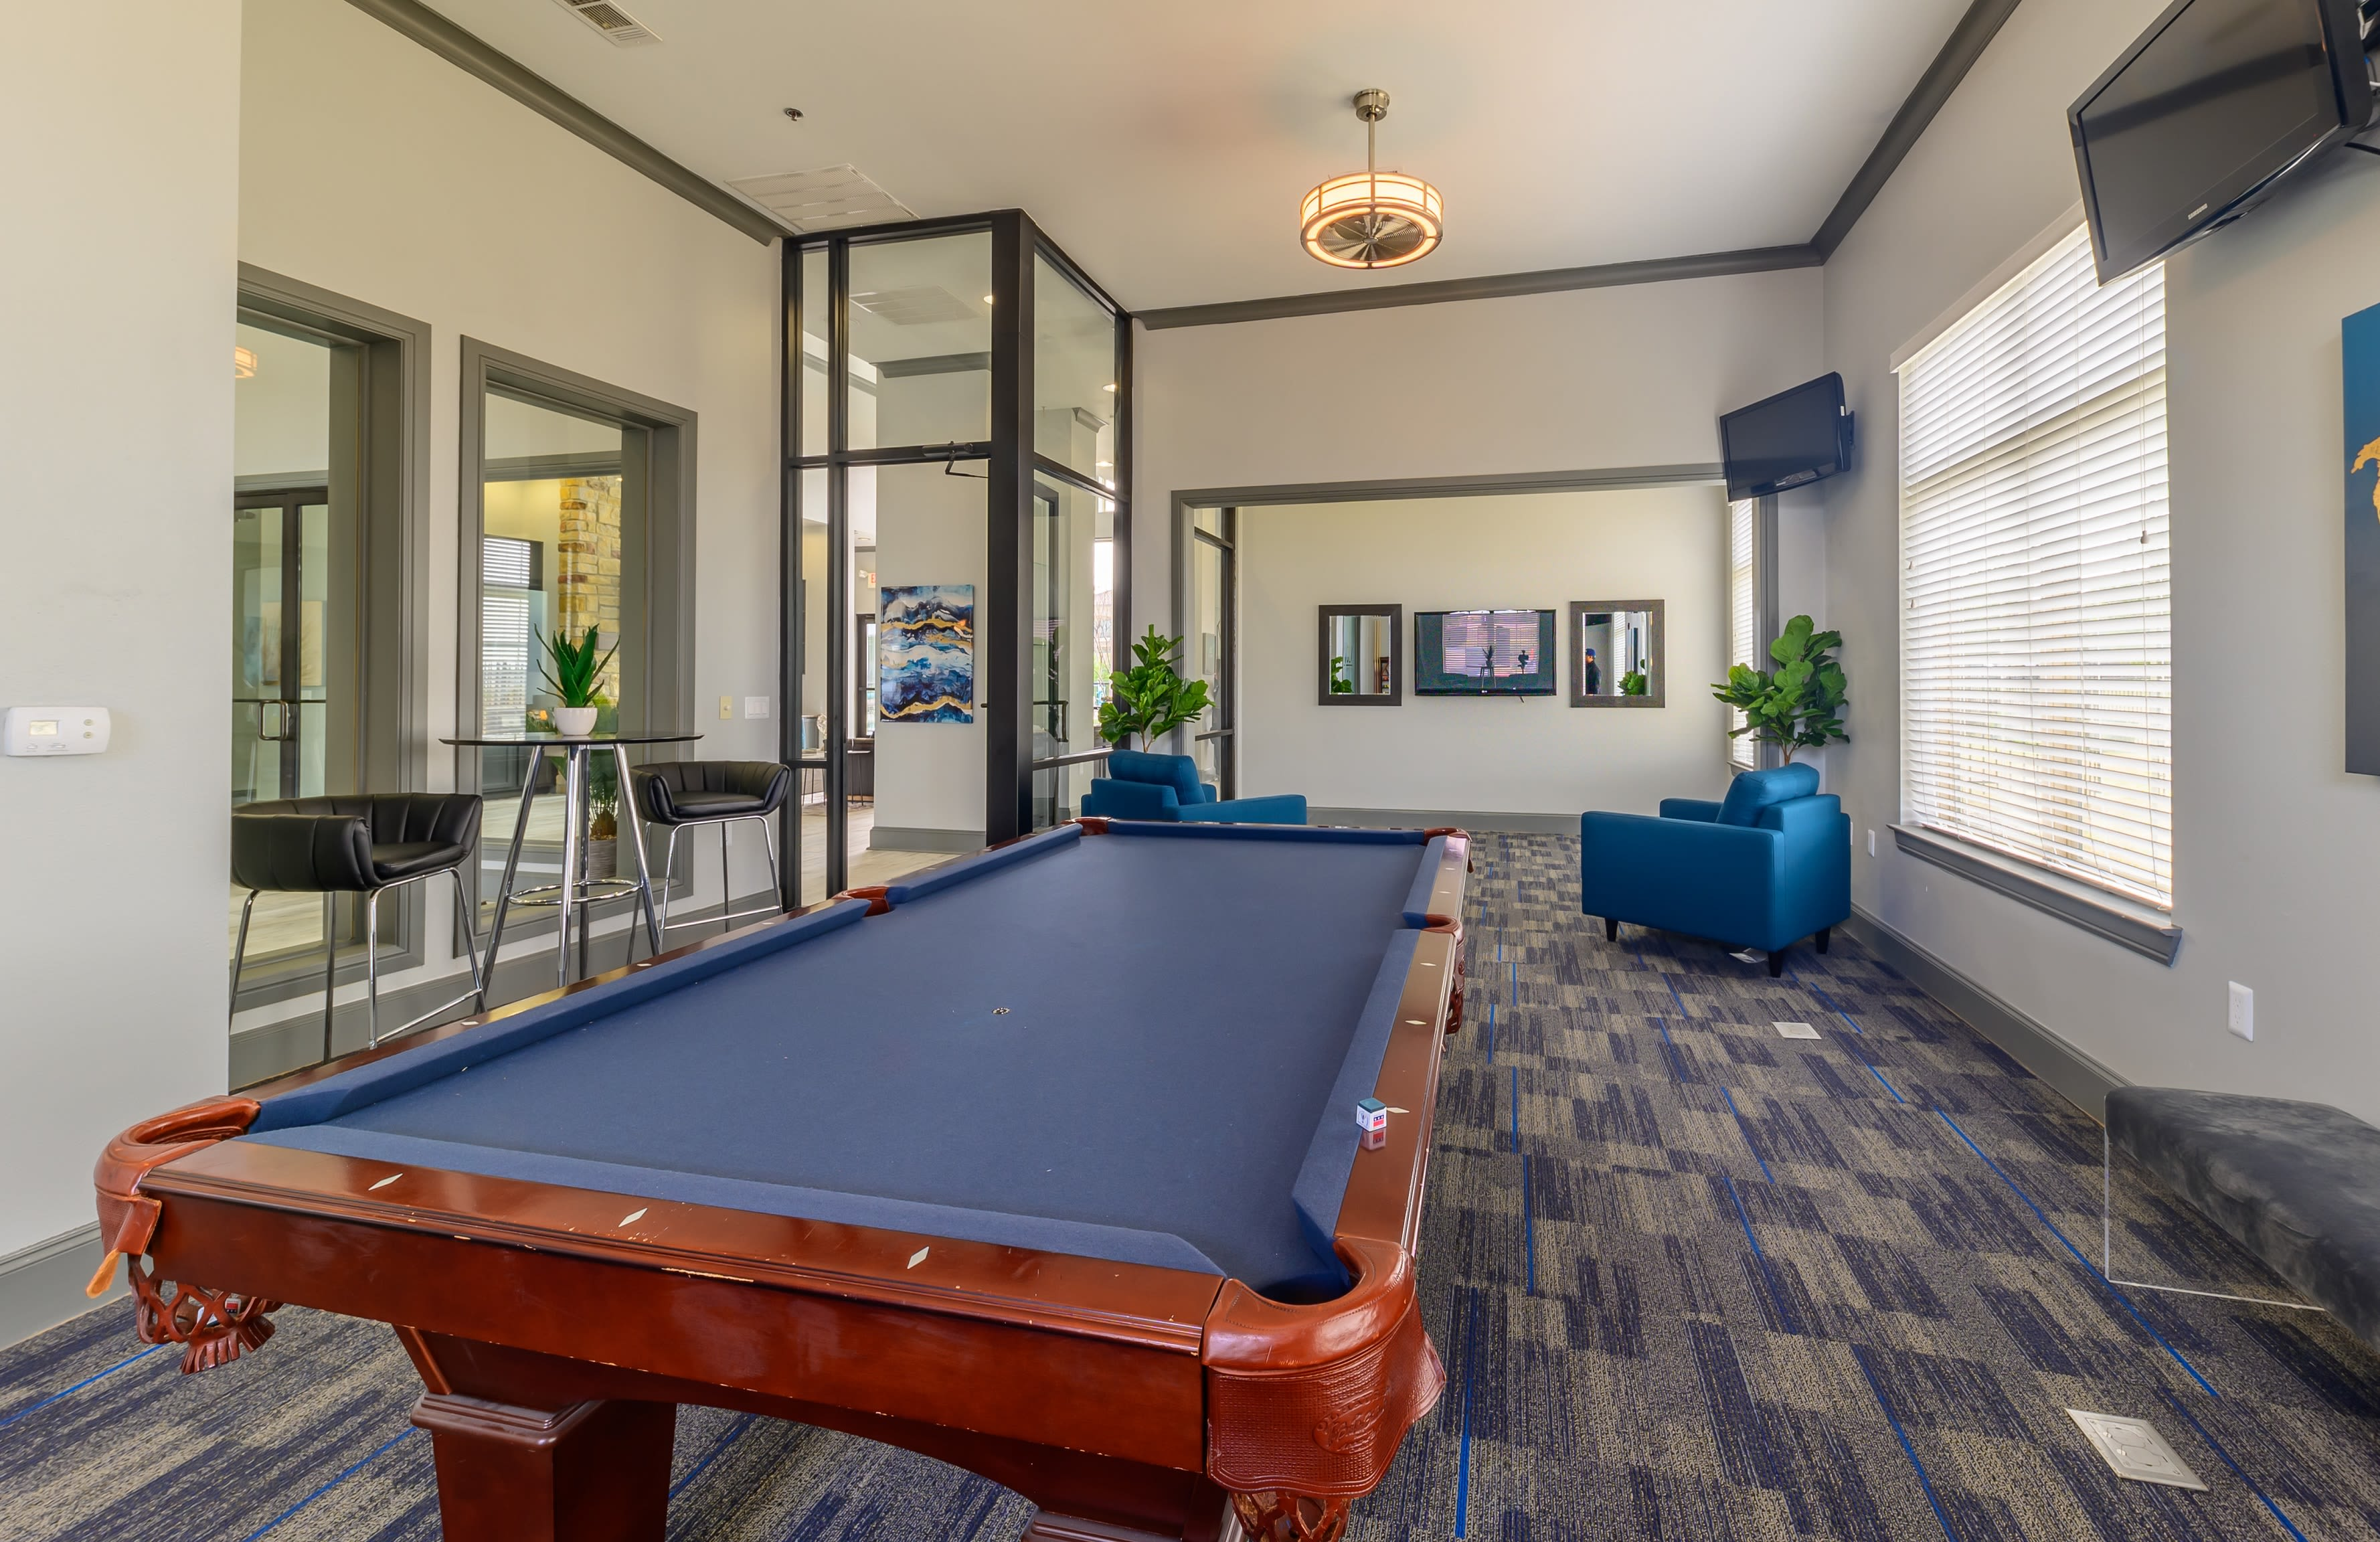 Billiards room at Evolv in Mansfield, Texas